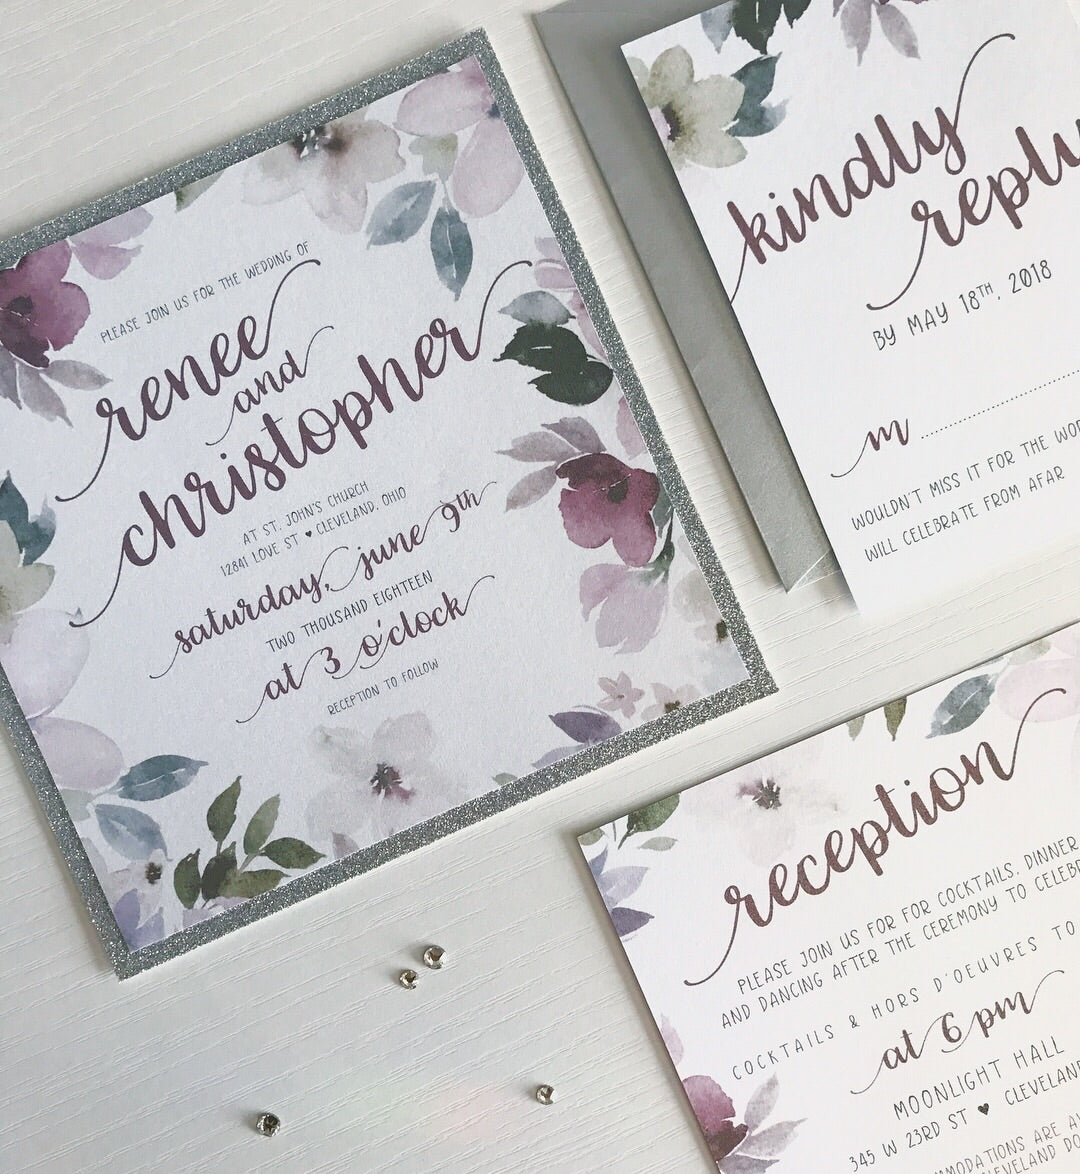 Shimmery square floral wedding invitations keewi designs llc shimmery square floral wedding invitations monicamarmolfo Image collections